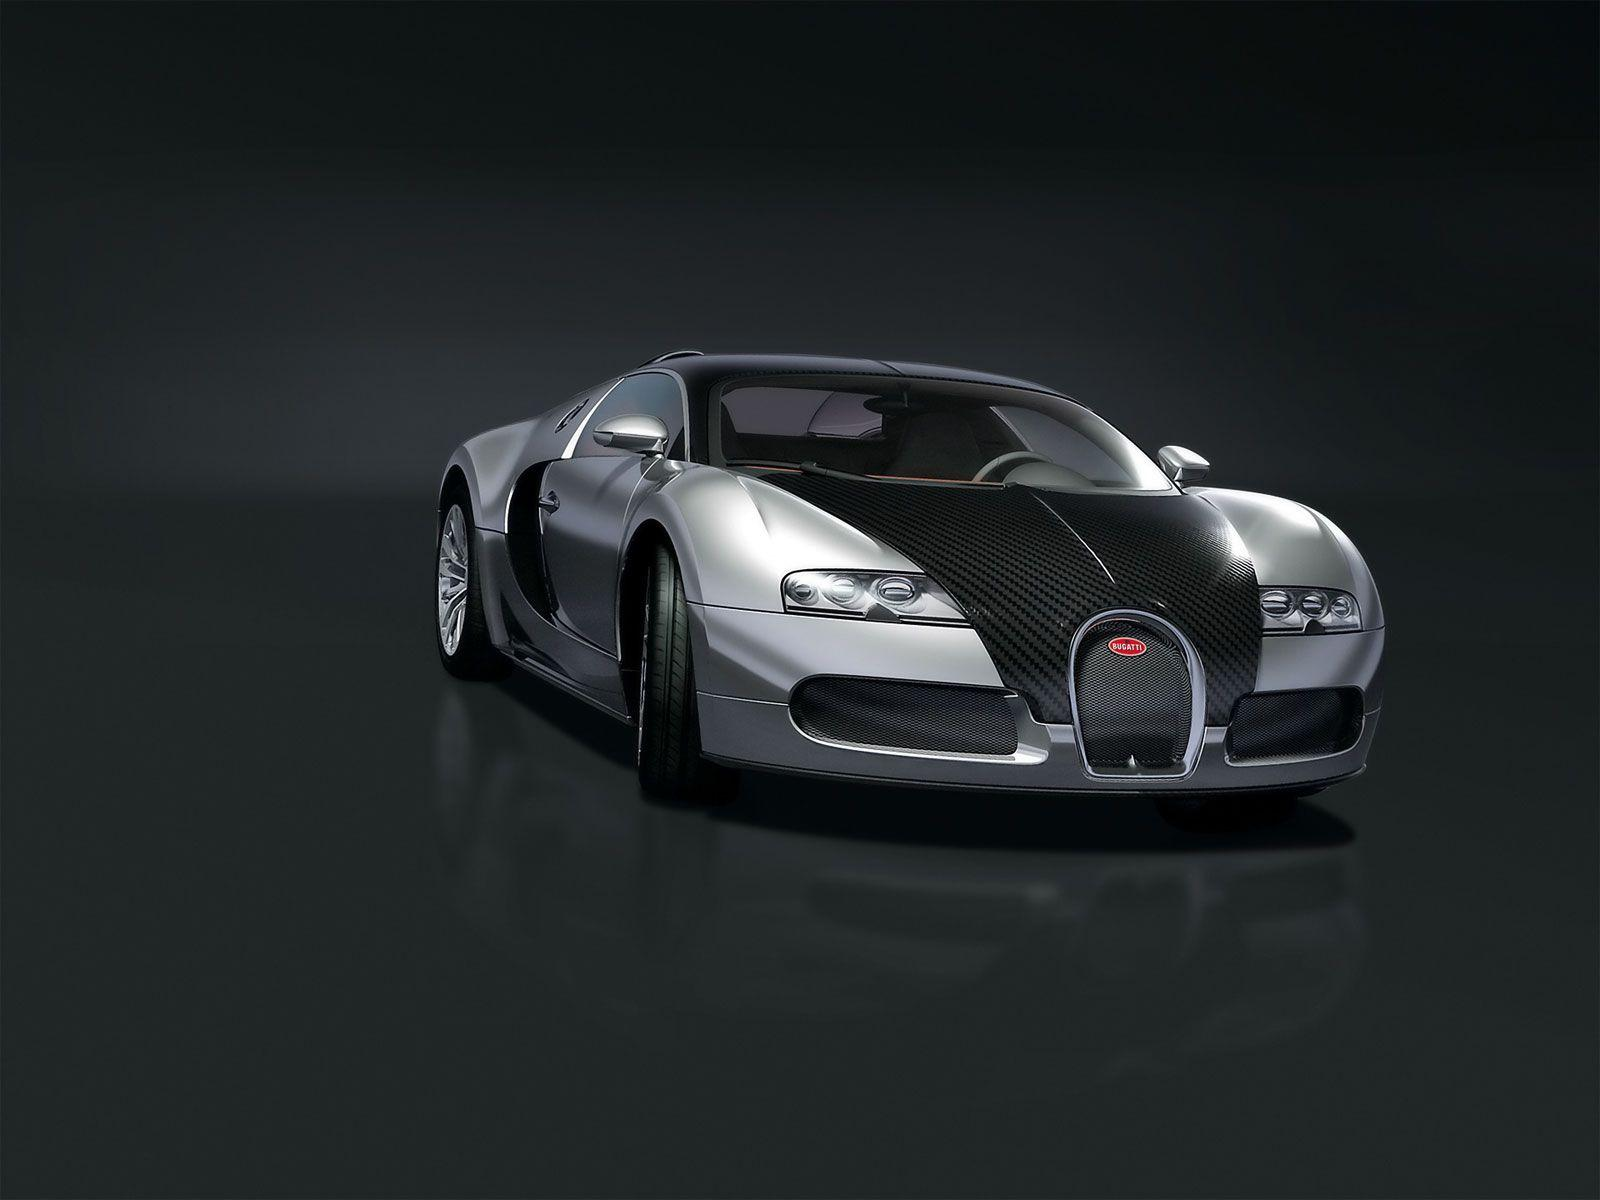 Logos For > Bugatti Veyron Logo Hd Wallpapers